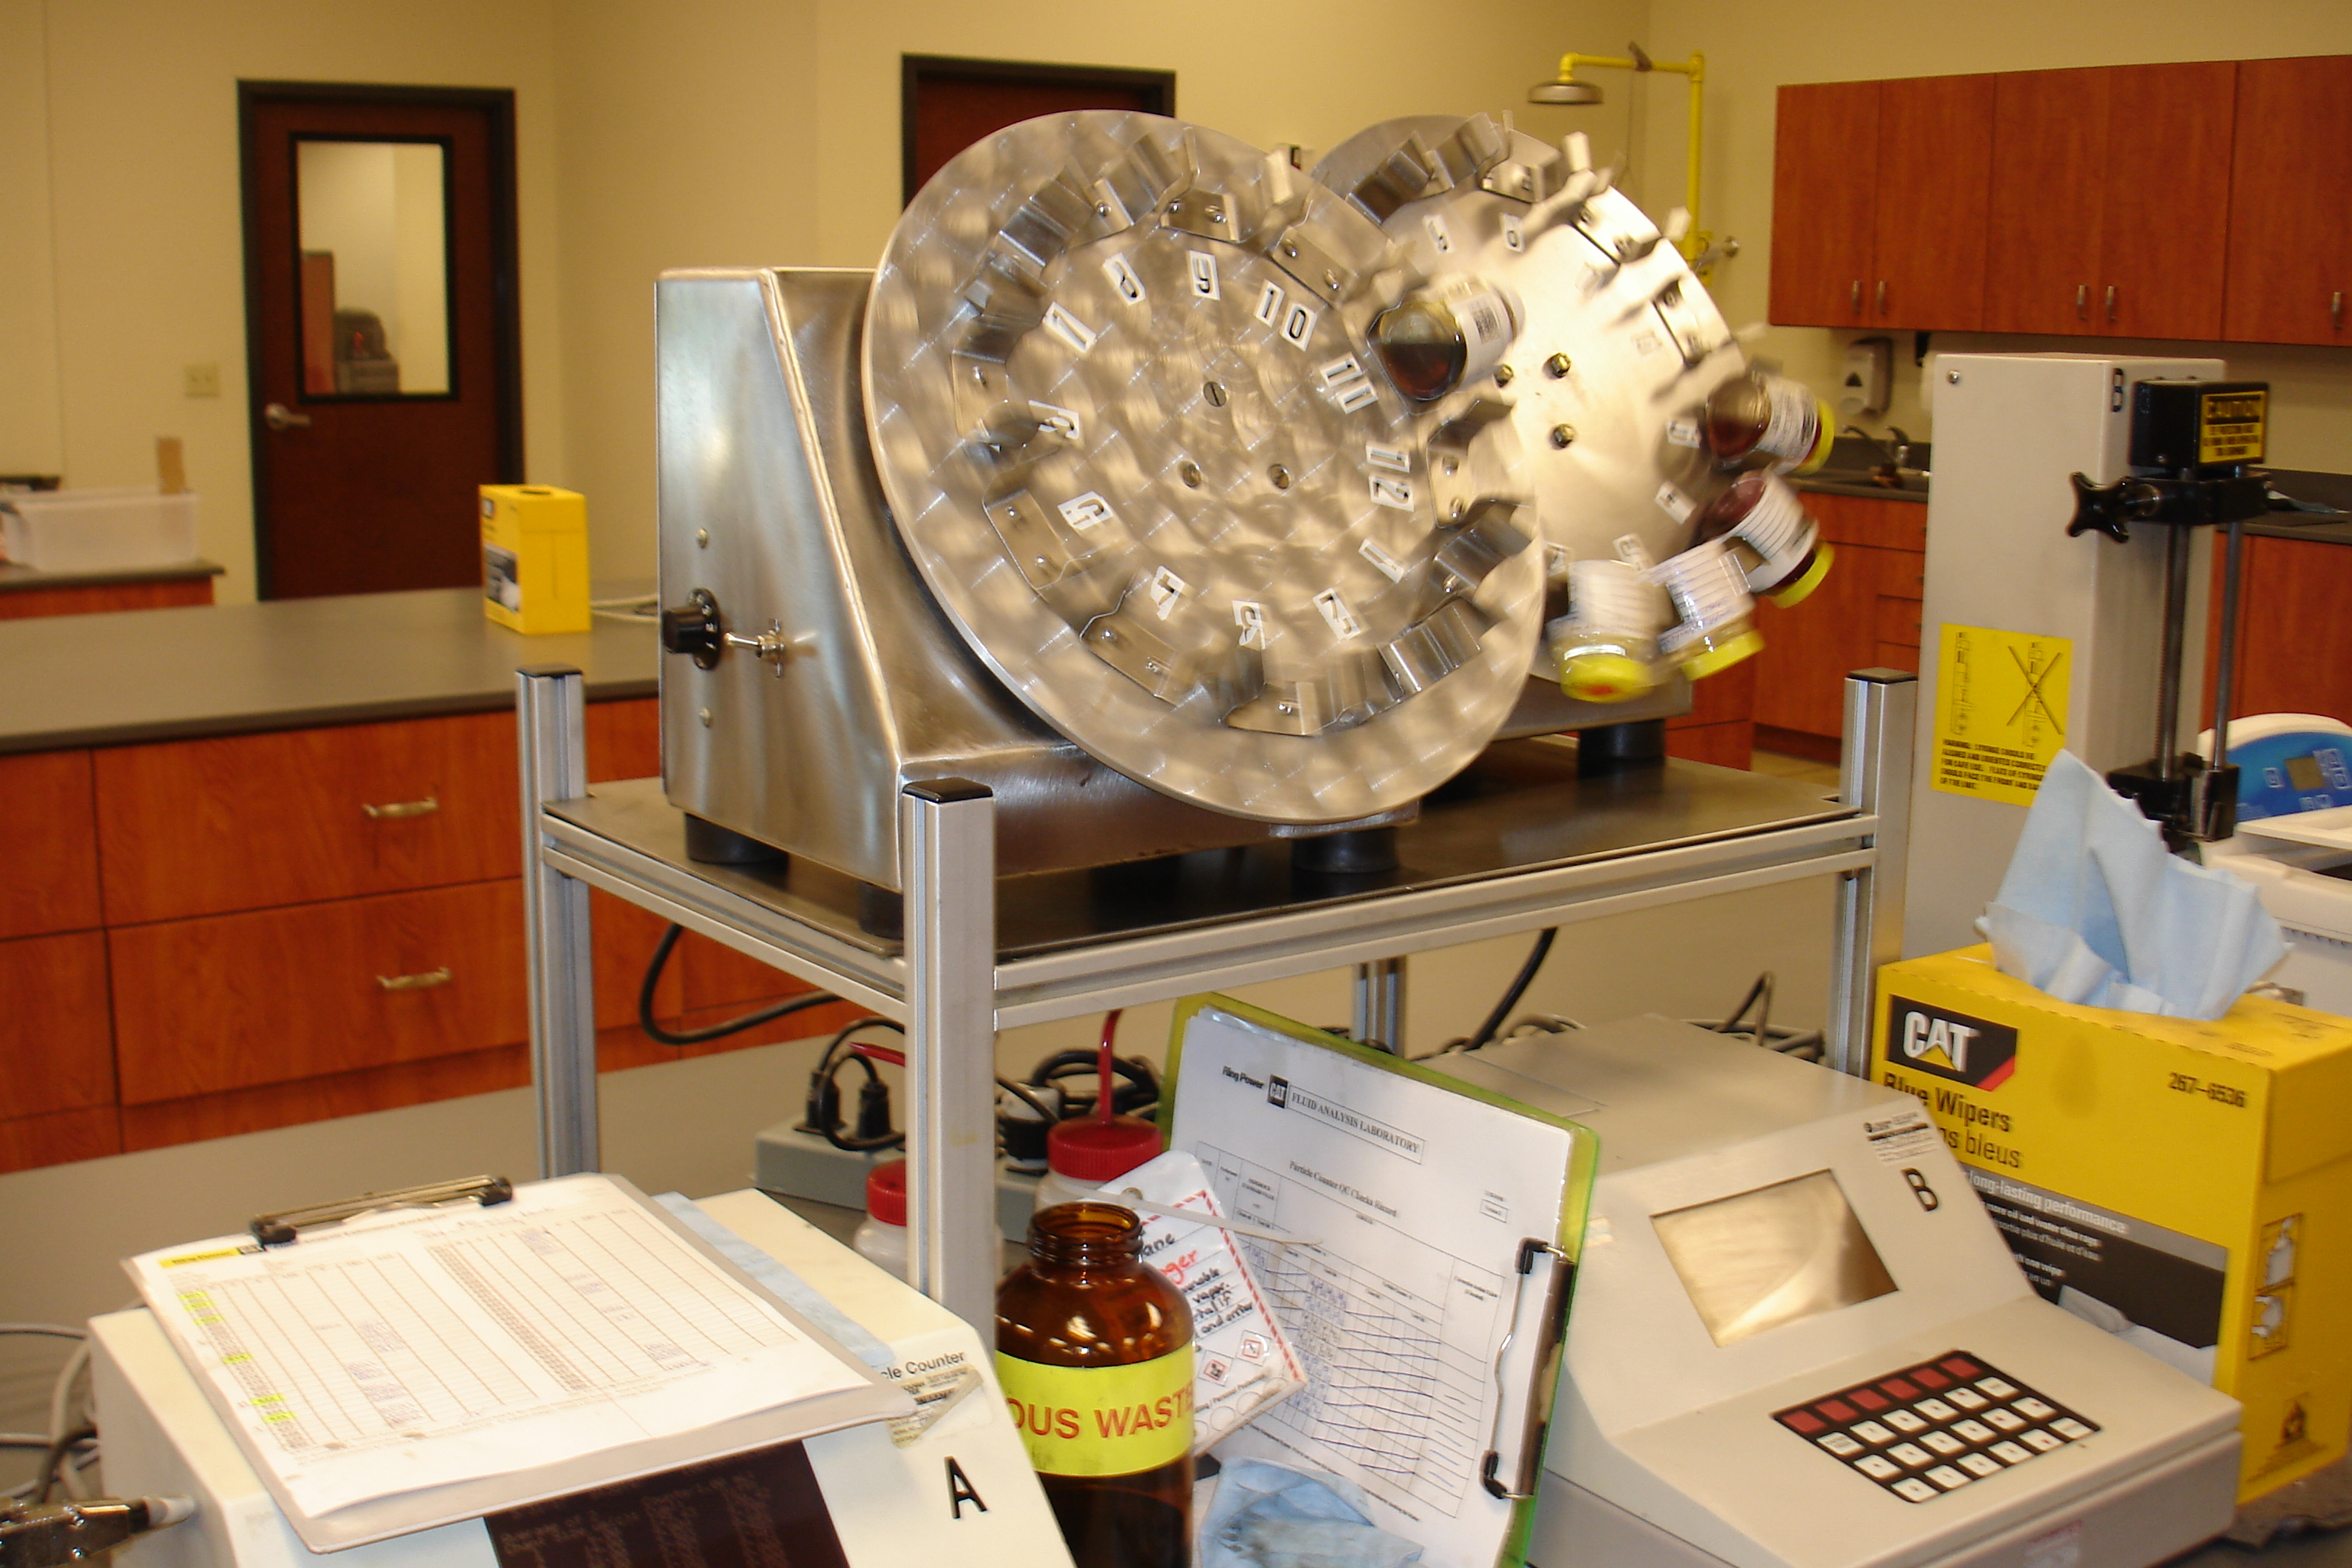 Two rotation wheels gently disperse the particles throughout the sample before particle count testing.